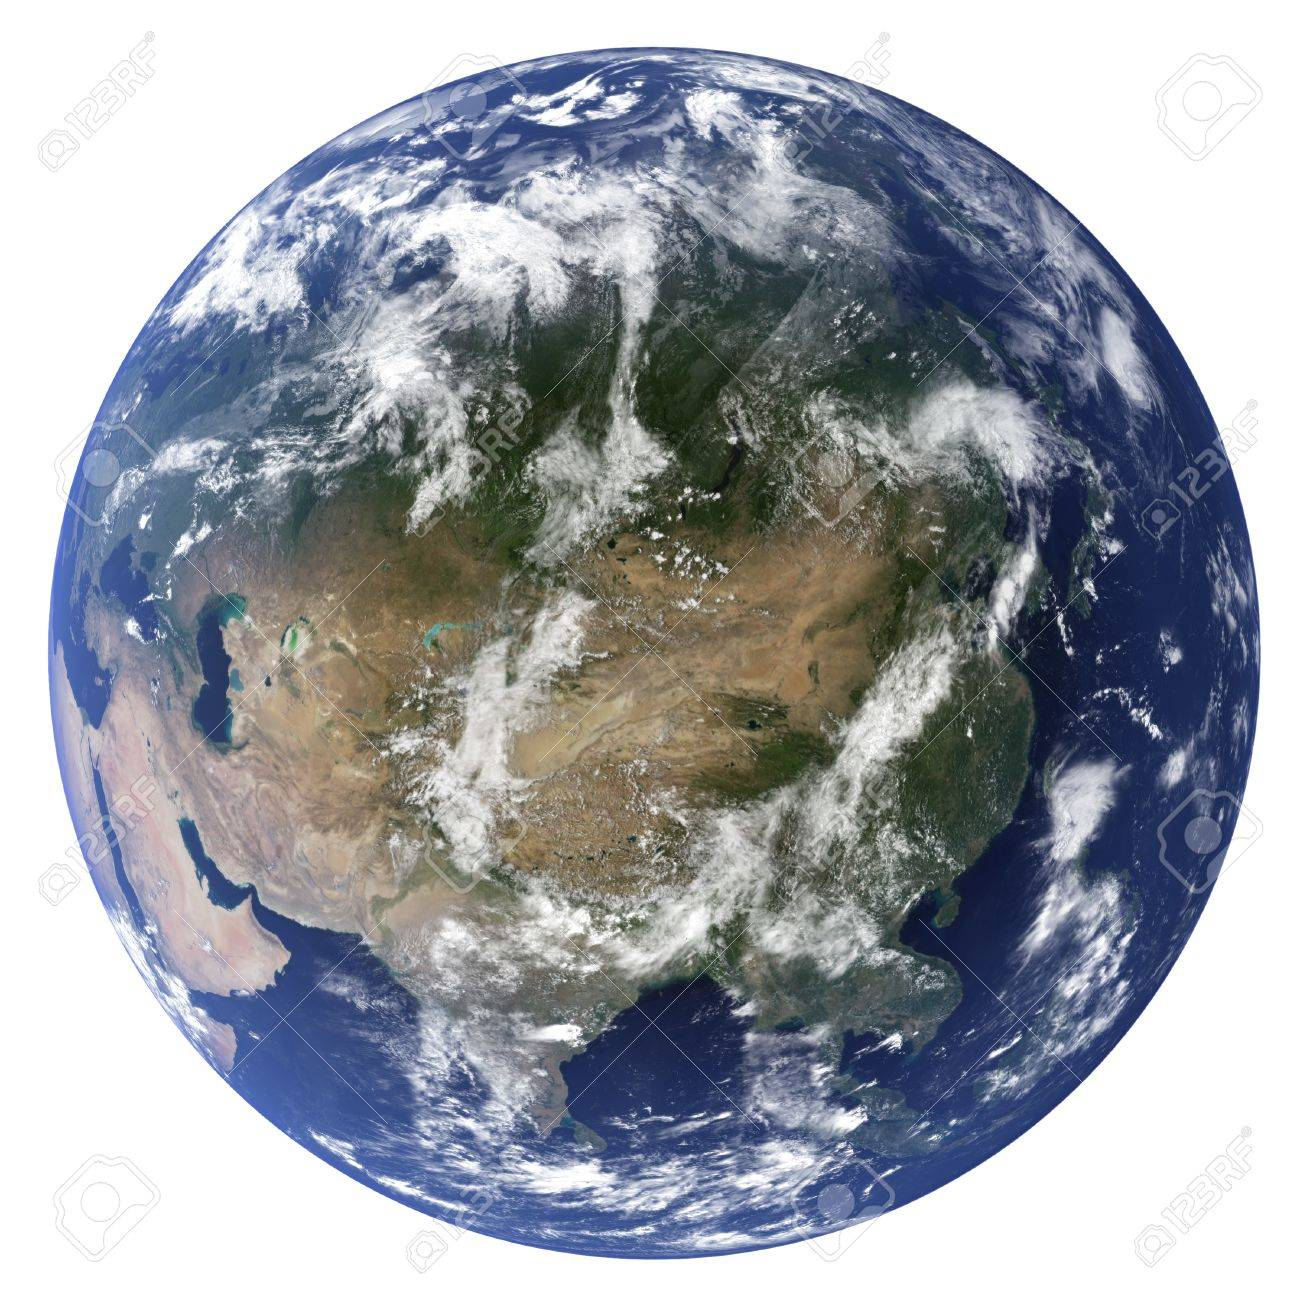 3D Earth globe (Clouds&Topography maps come from earthobervatory/nasa) - 9772346